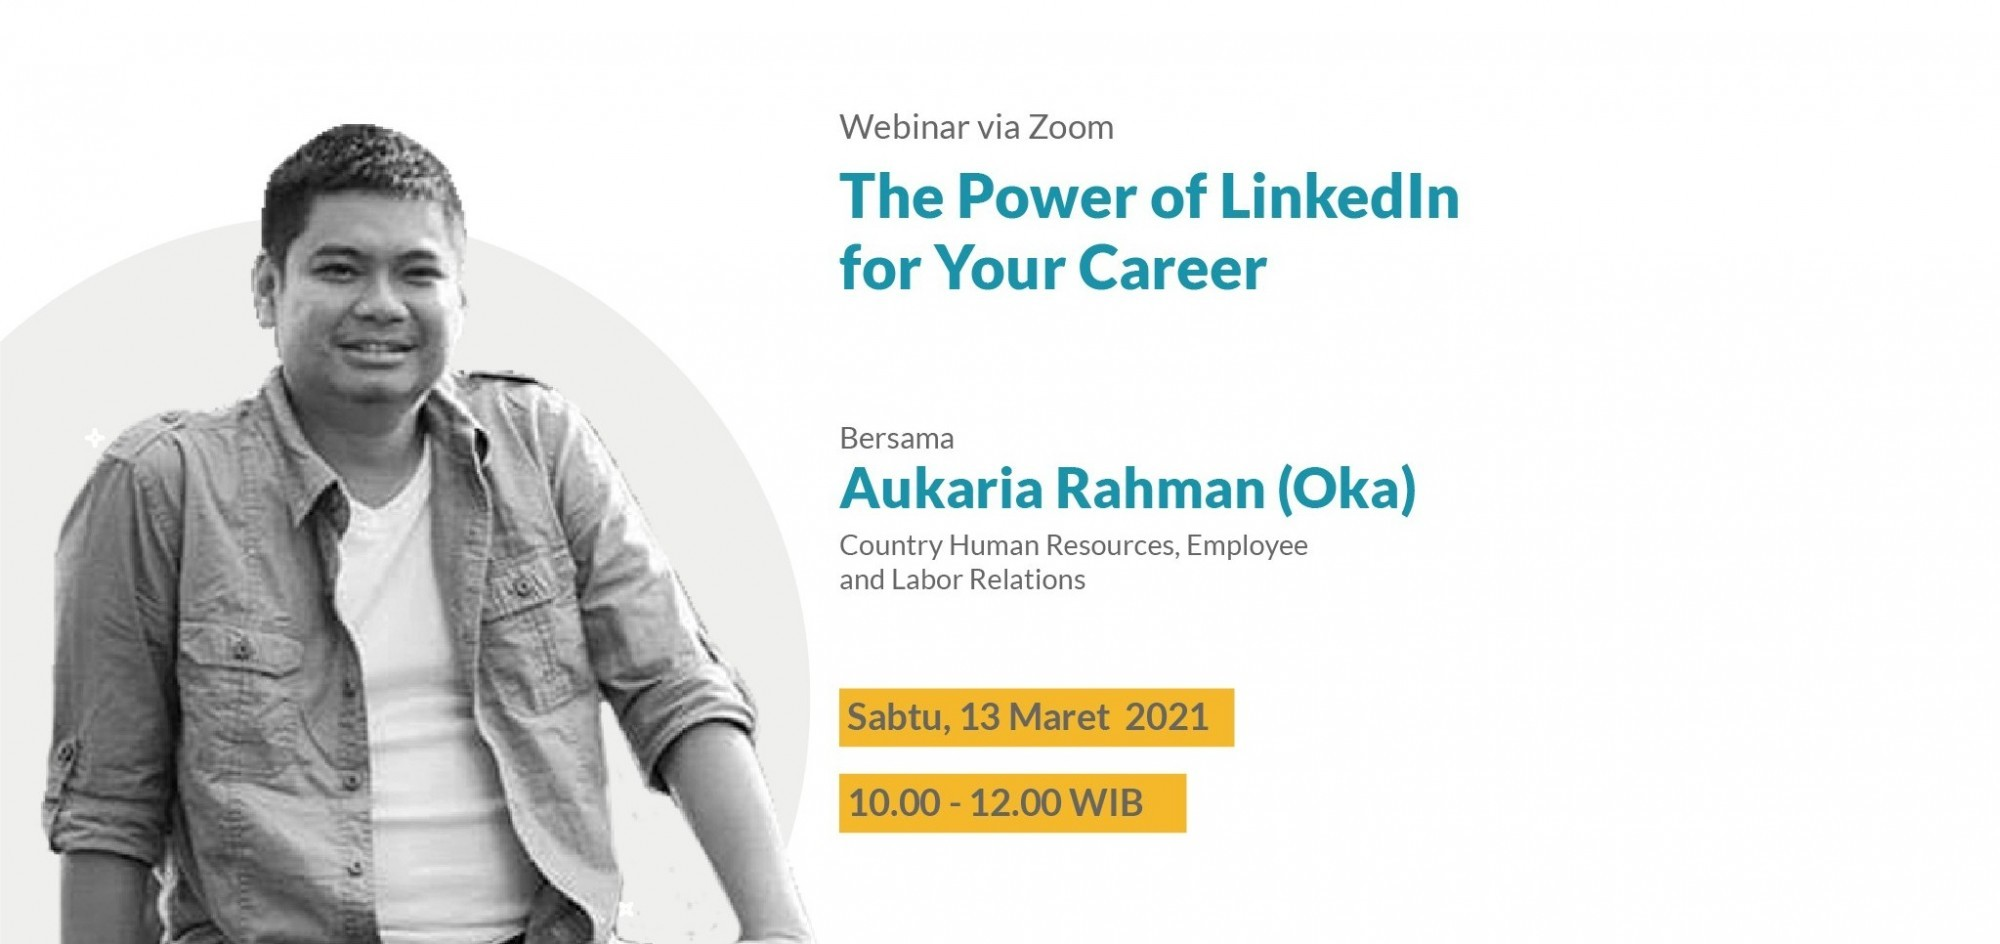 The Power of Linkedin for Your Career